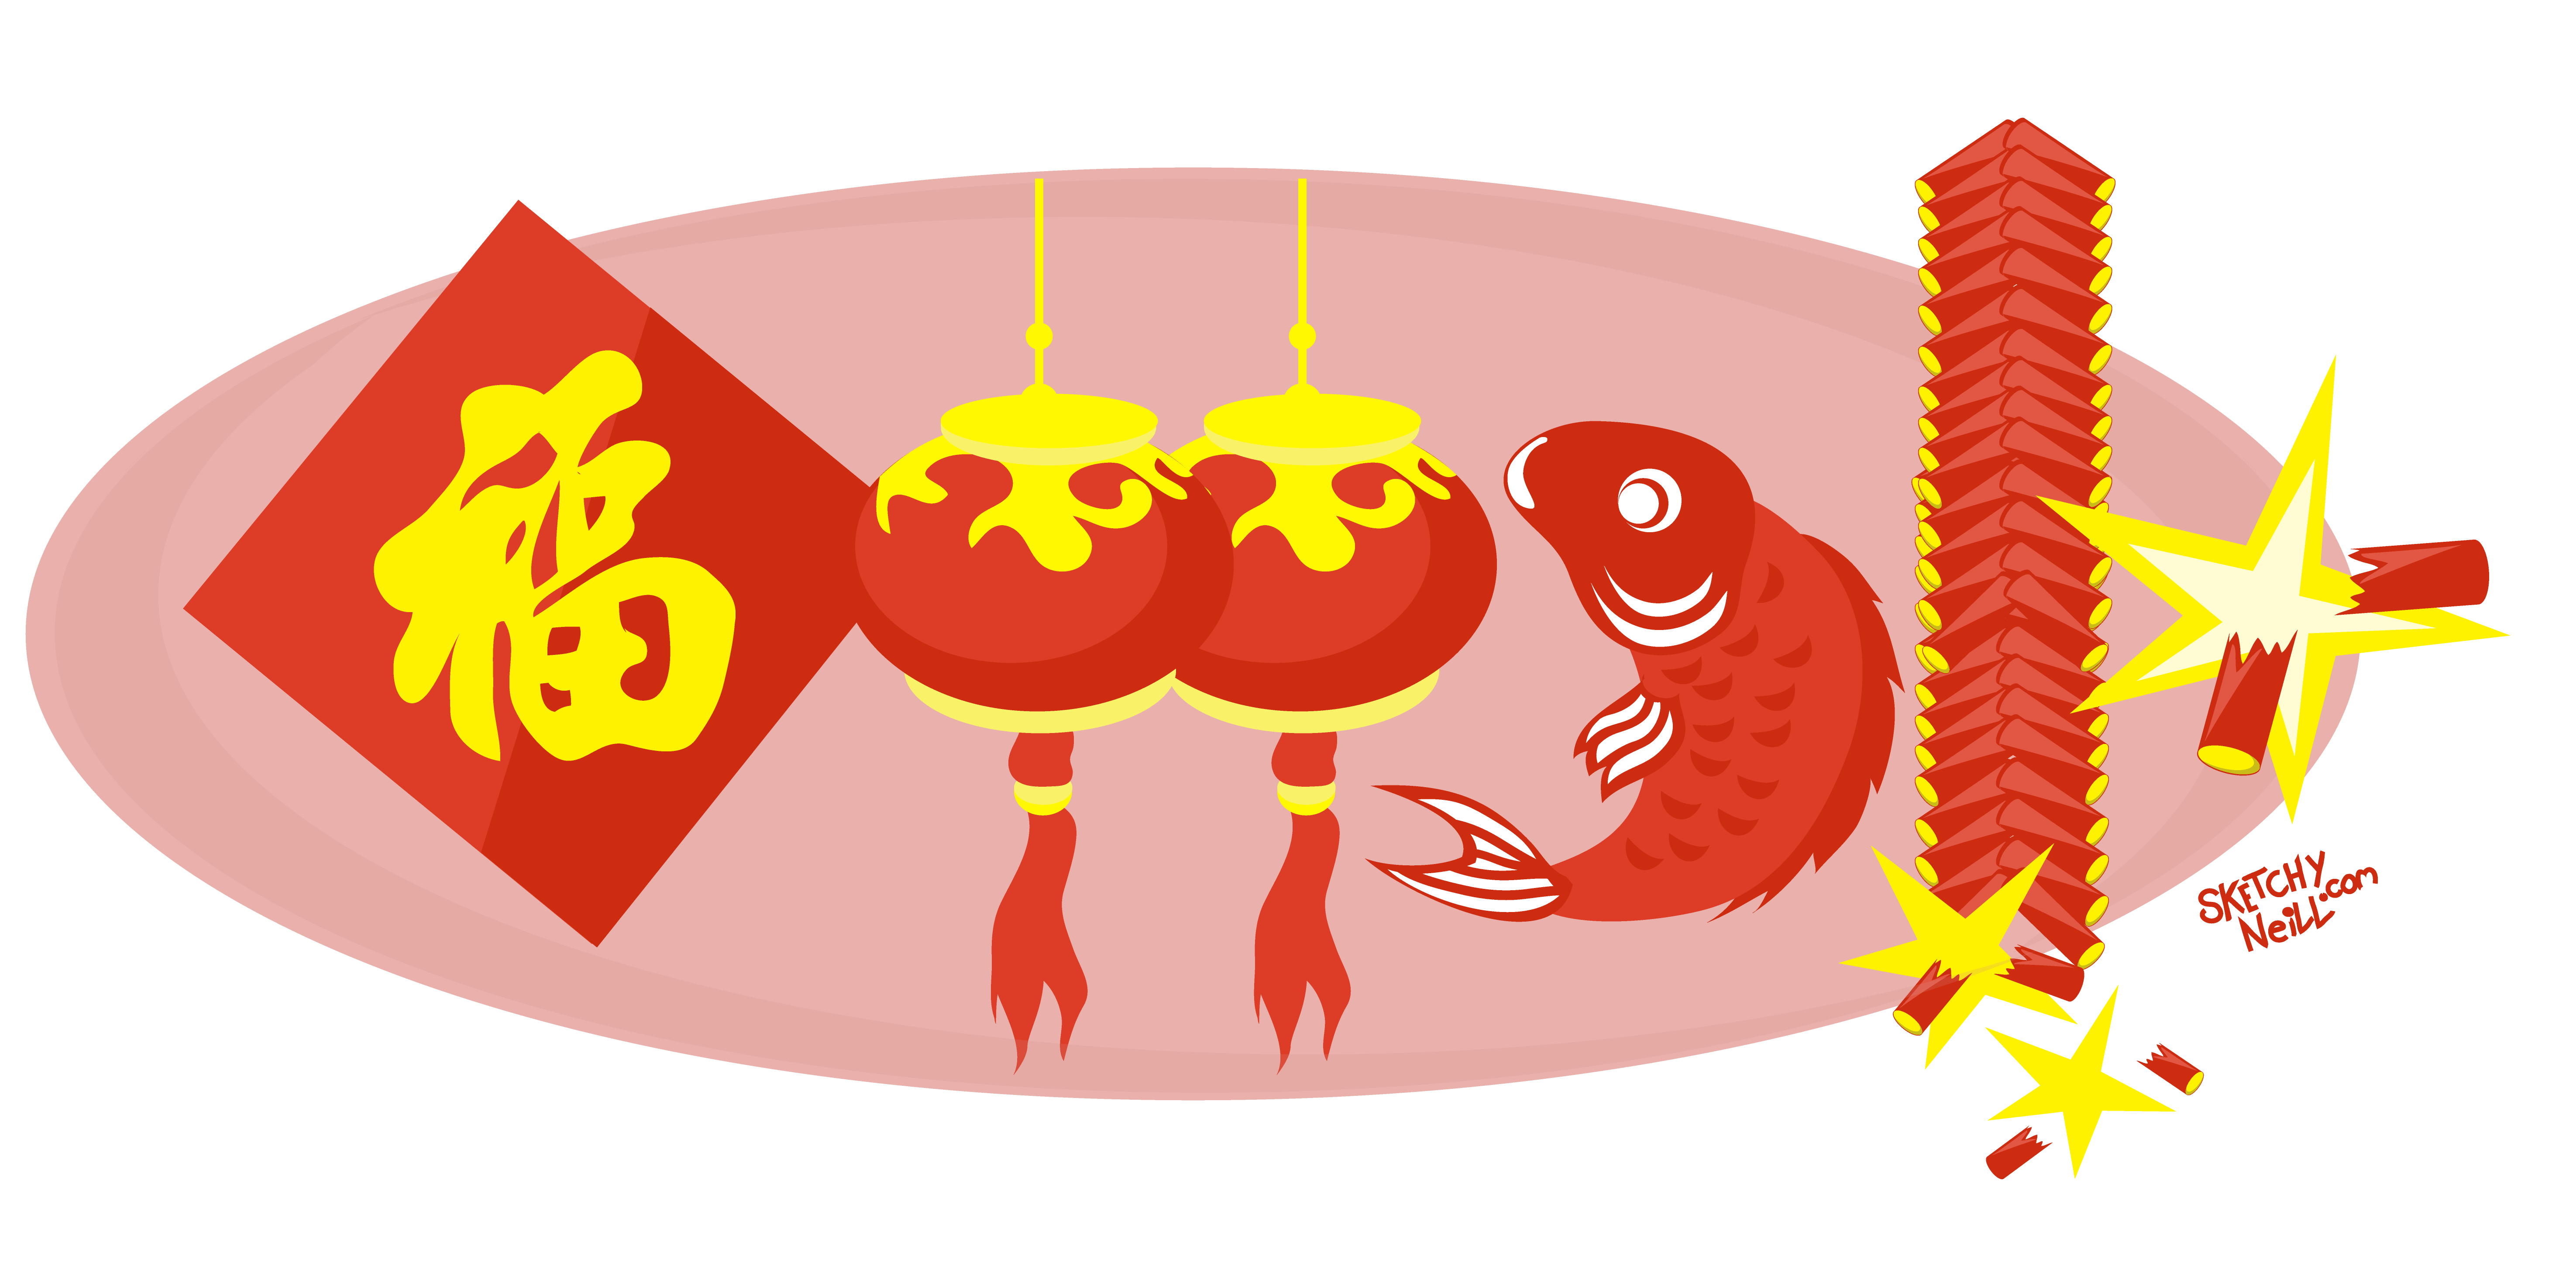 February 10, 2013 Time to celebrate the year of the